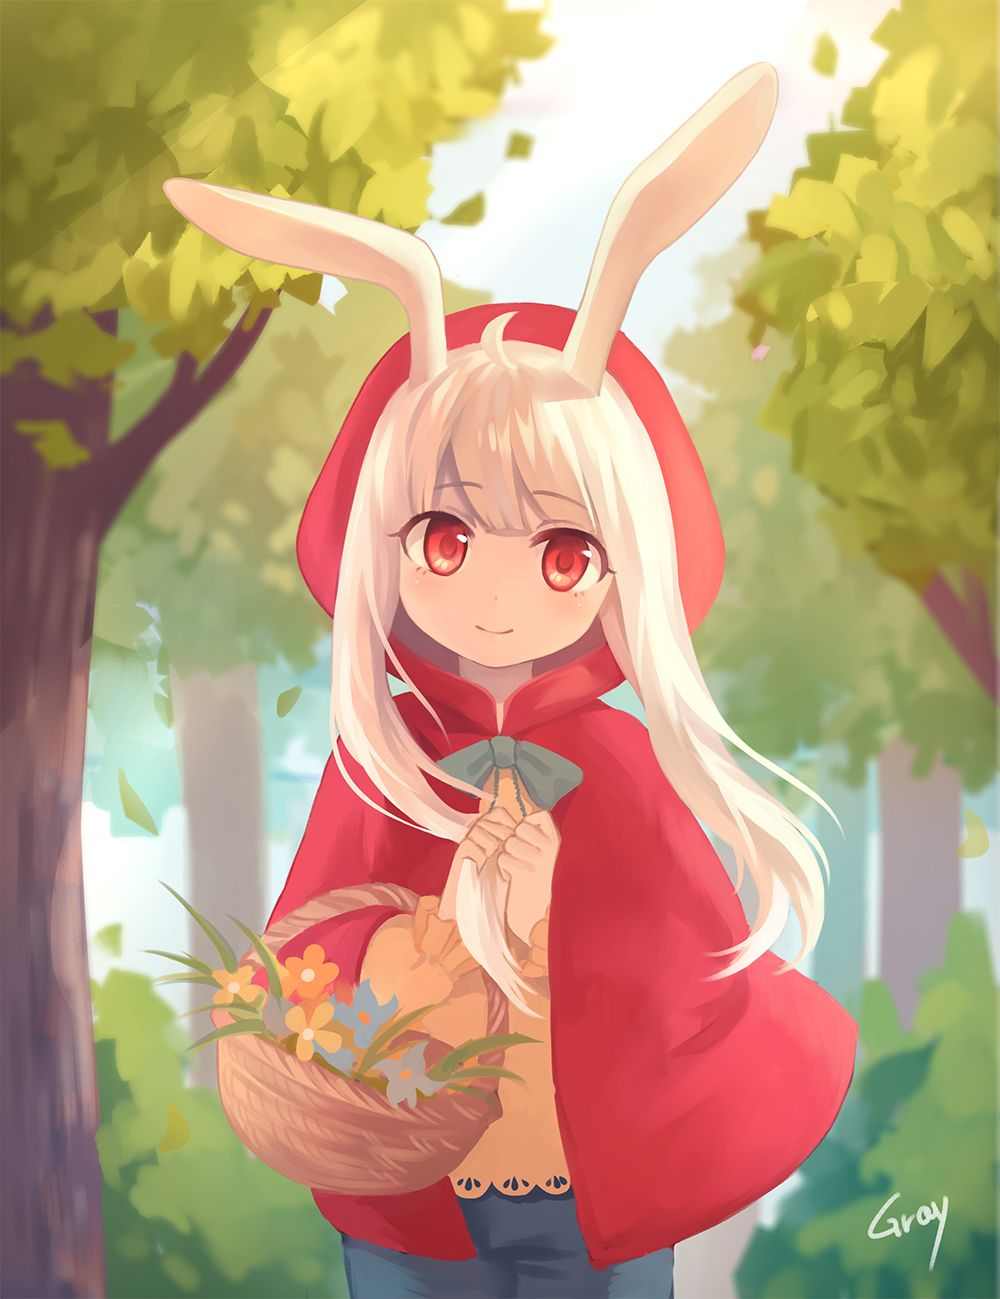 Pin By Victoria Finney On Wolf Rabbit Anime Rpg Horror Games Kawaii Anime